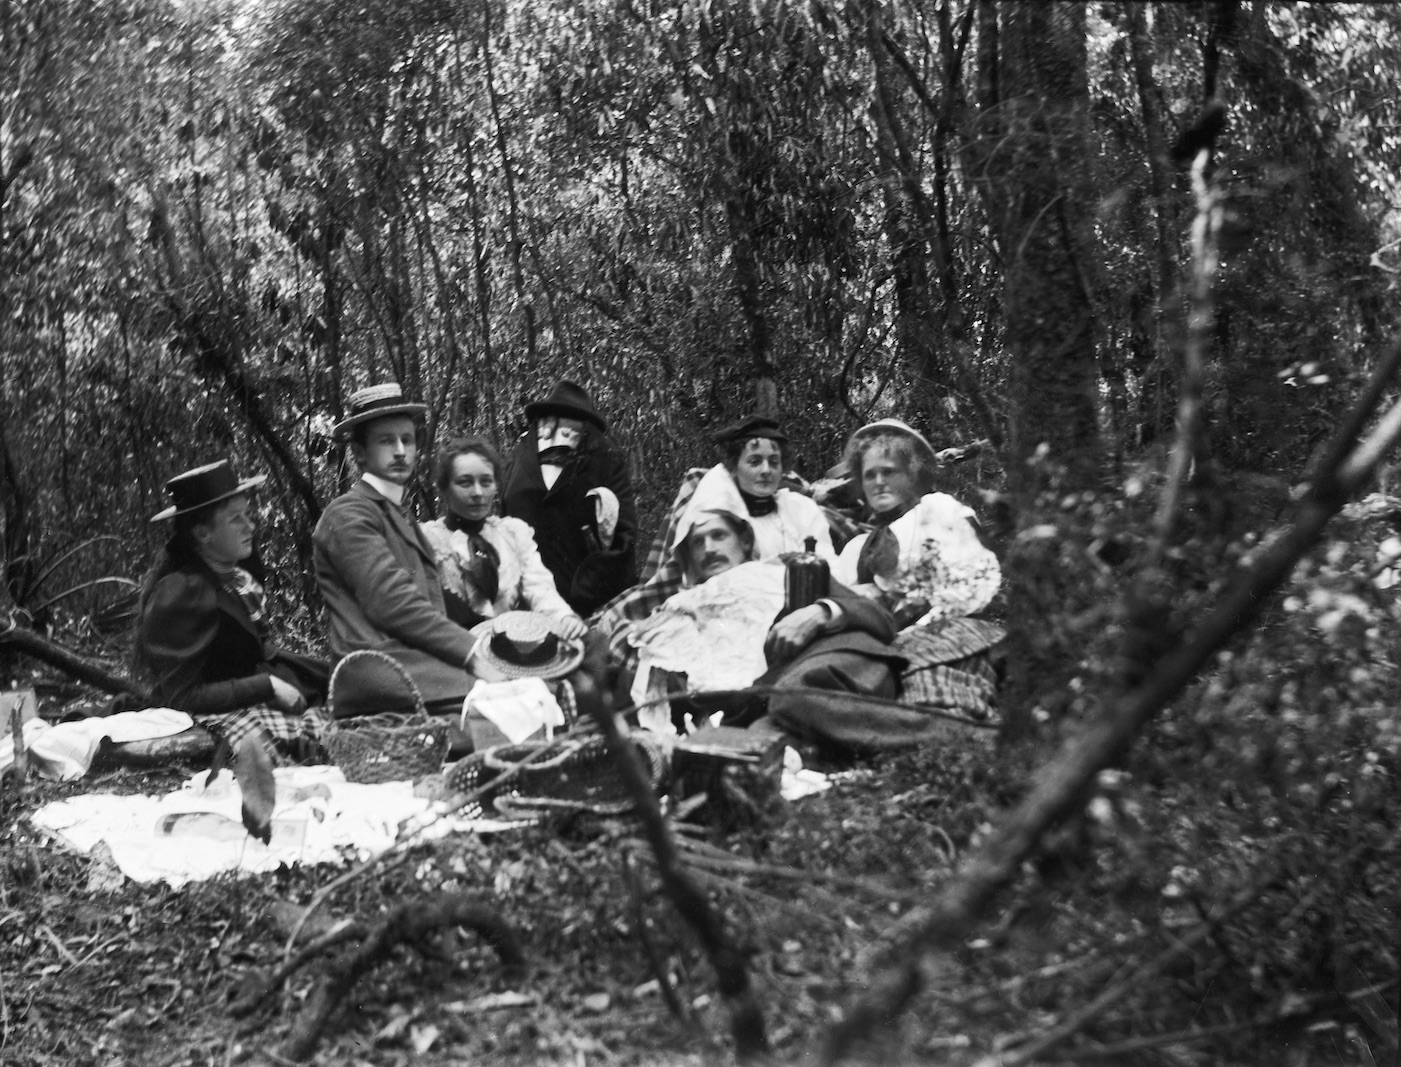 Some next level shenanigans at an Edwardian picnic in the New Zealand bush, likely North Island circa 1907-1911. Lemuel Lyes Collection.